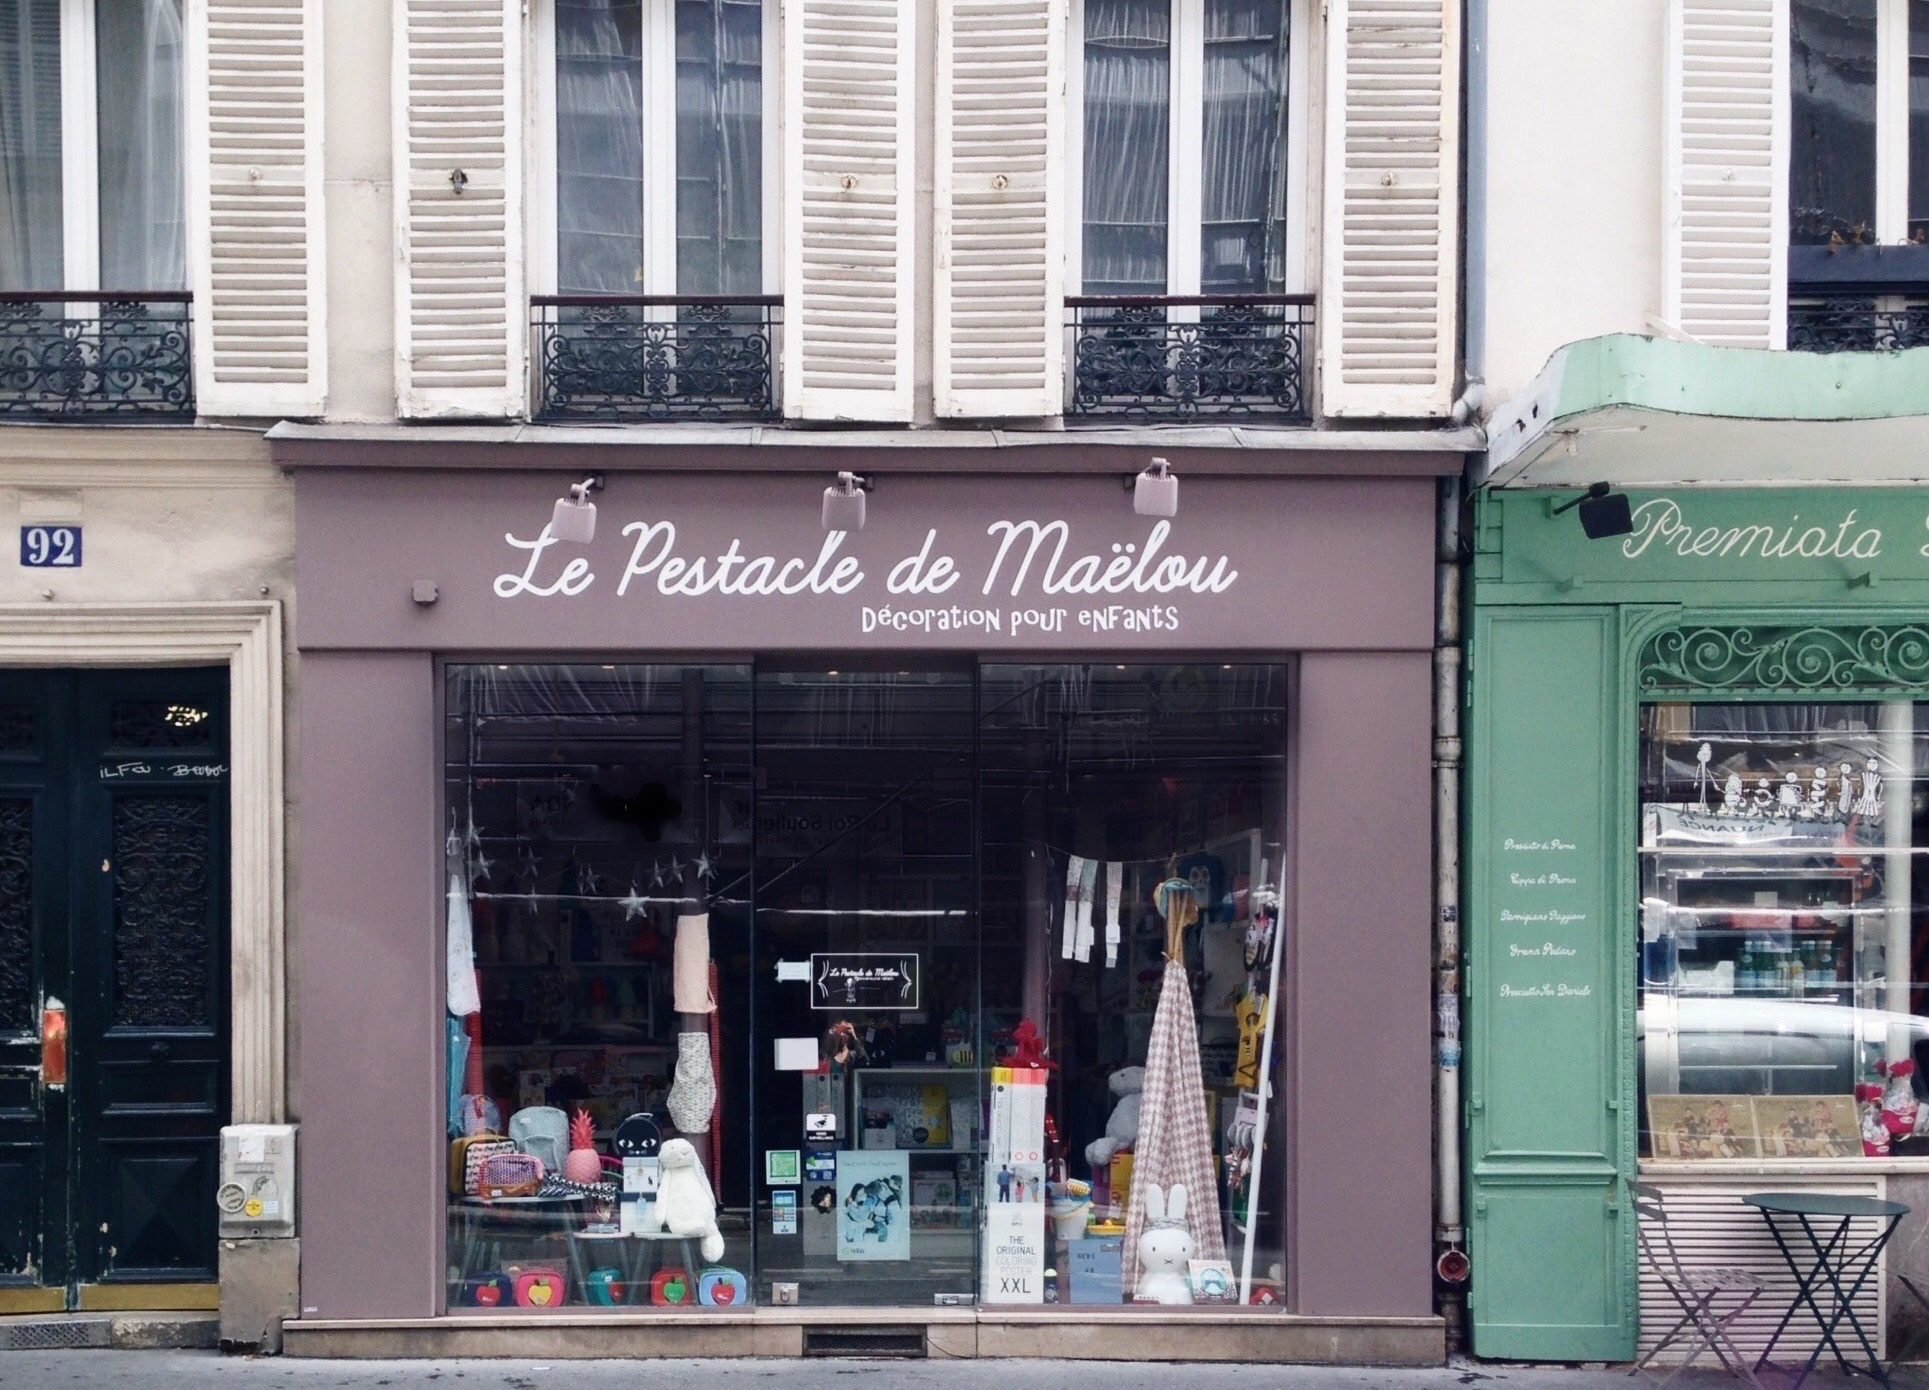 Boutique Le Pestacle de Maëlou Paris 17